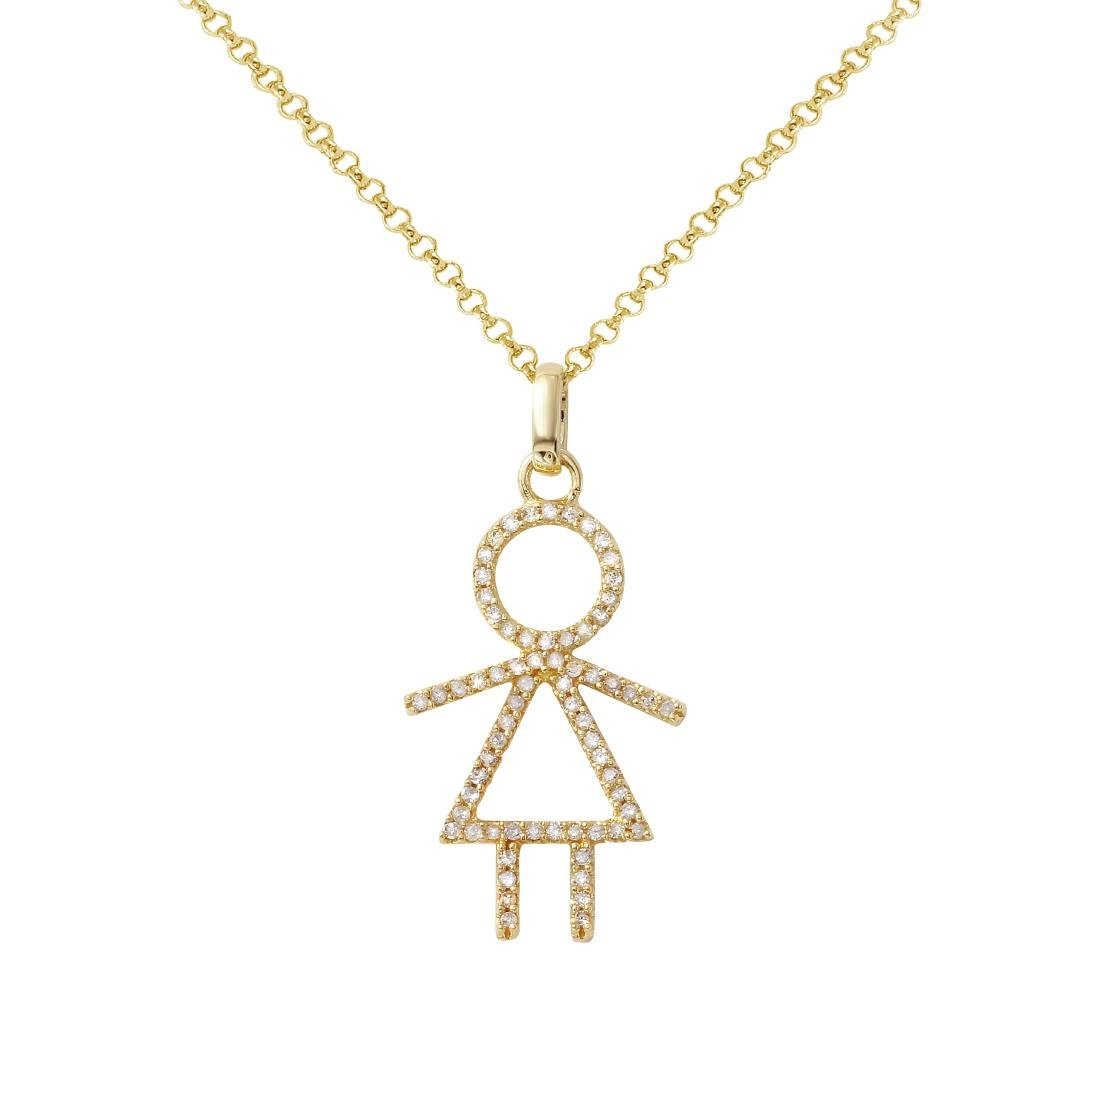 14KT Yellow Gold Ladies Slider with Chain - 2